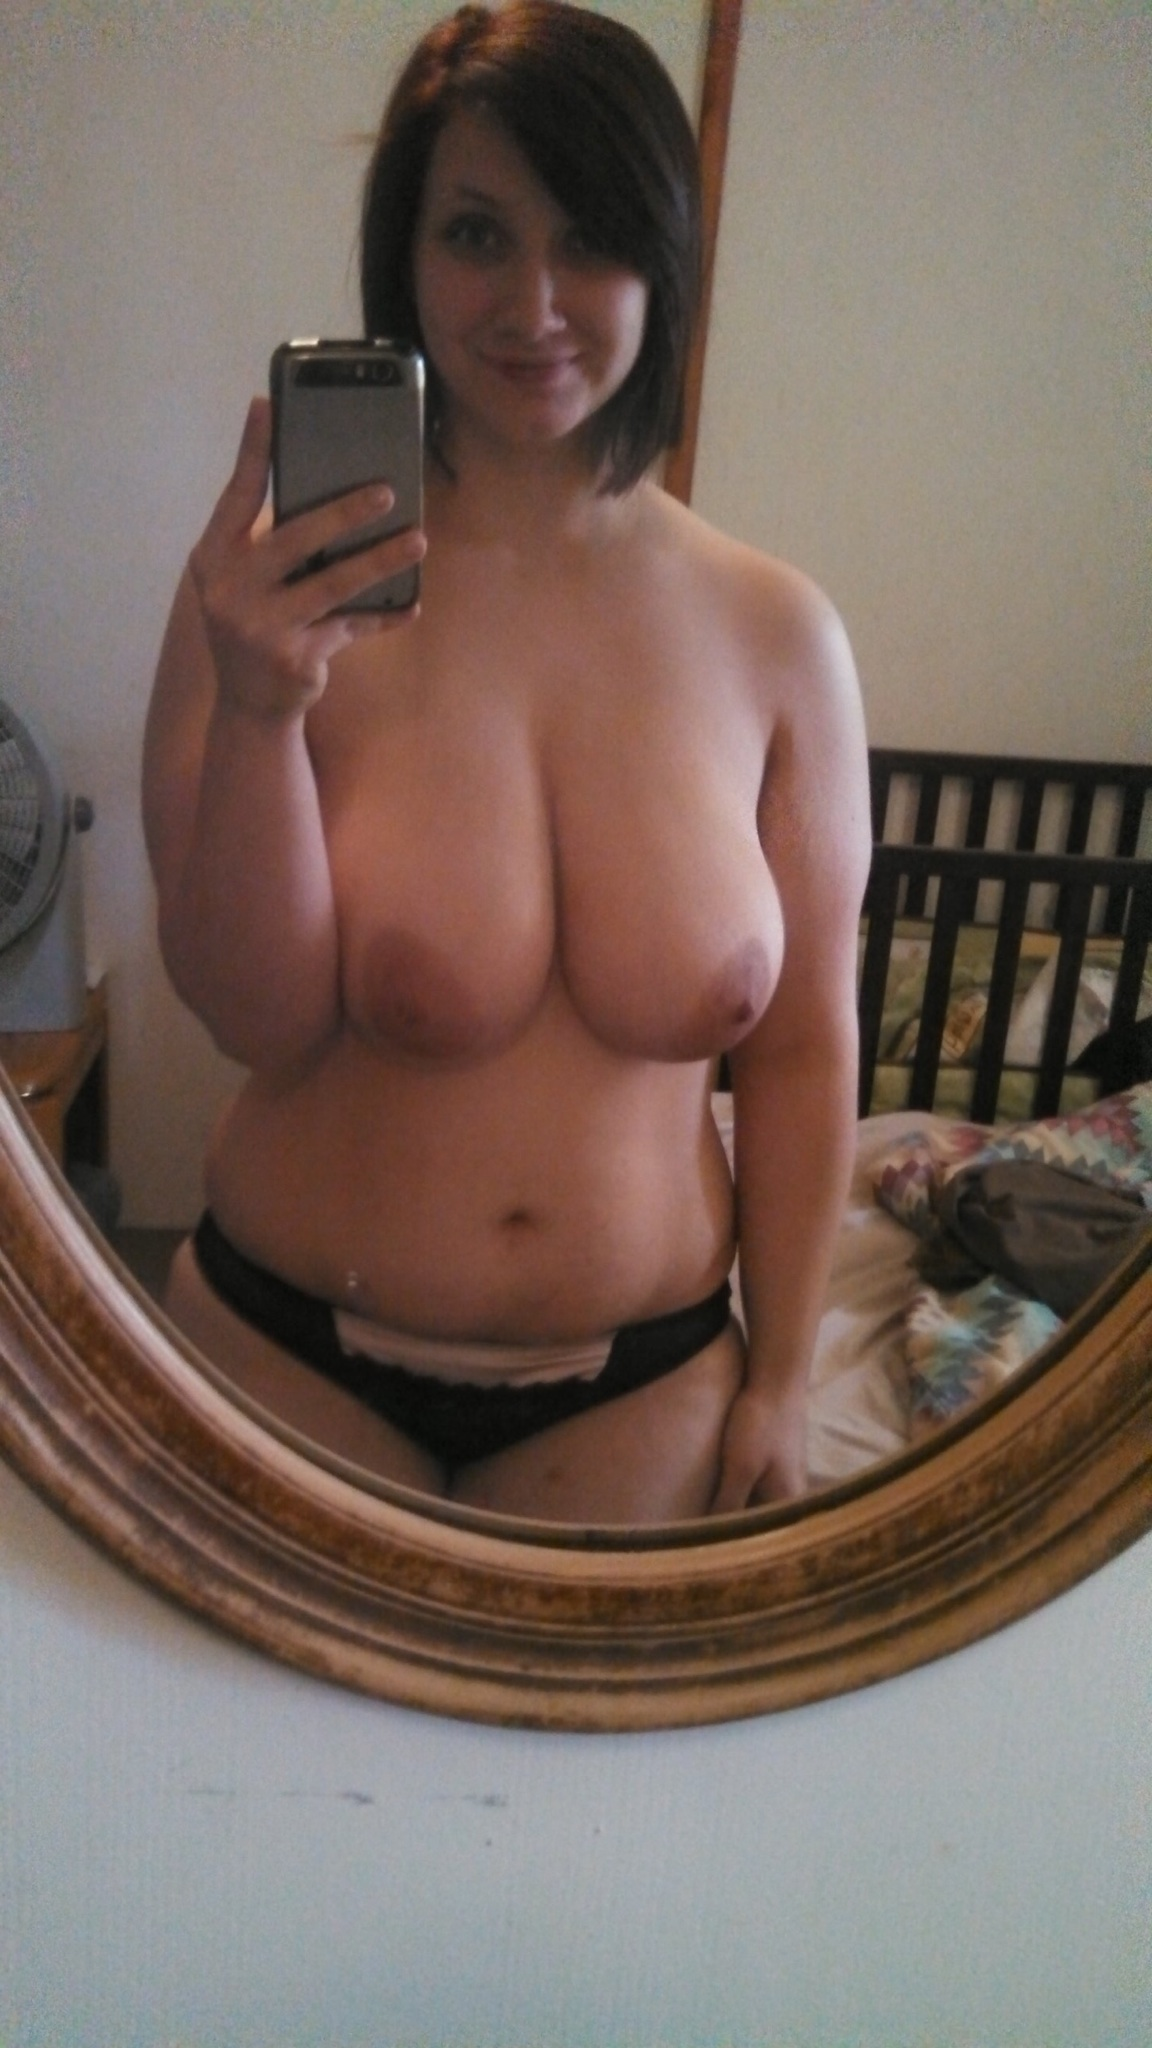 Boobs selfie chubby girl big